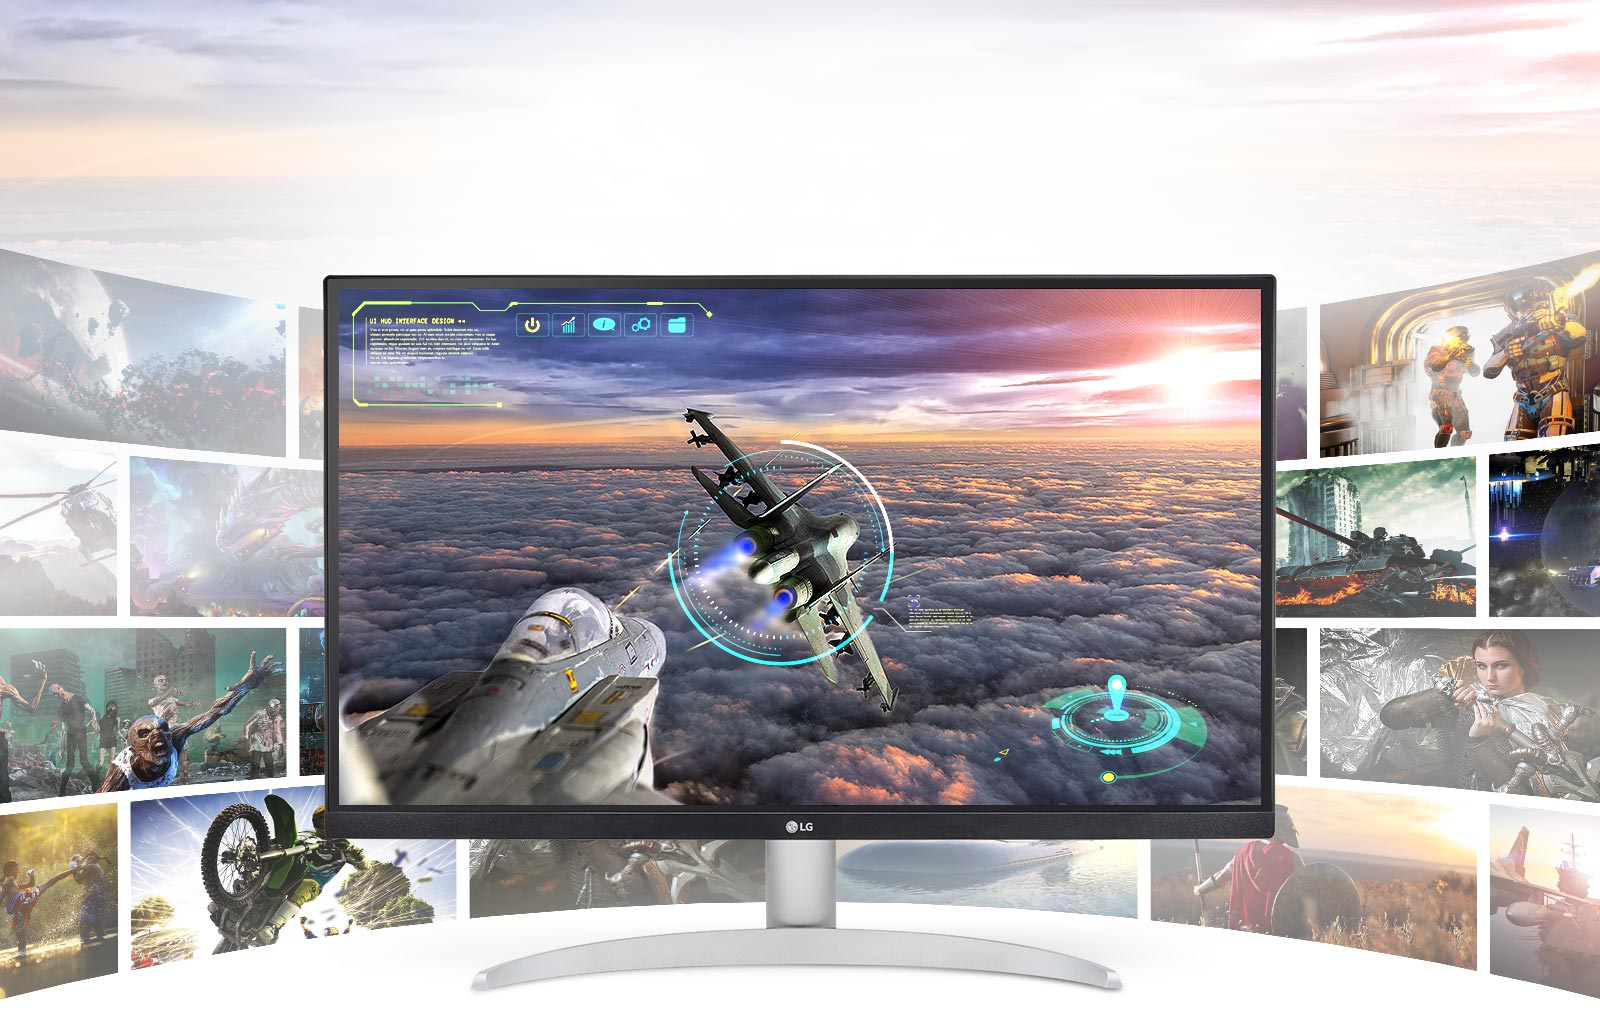 Gaming scene with exceptional clarity, and details in LG UHD 4K display